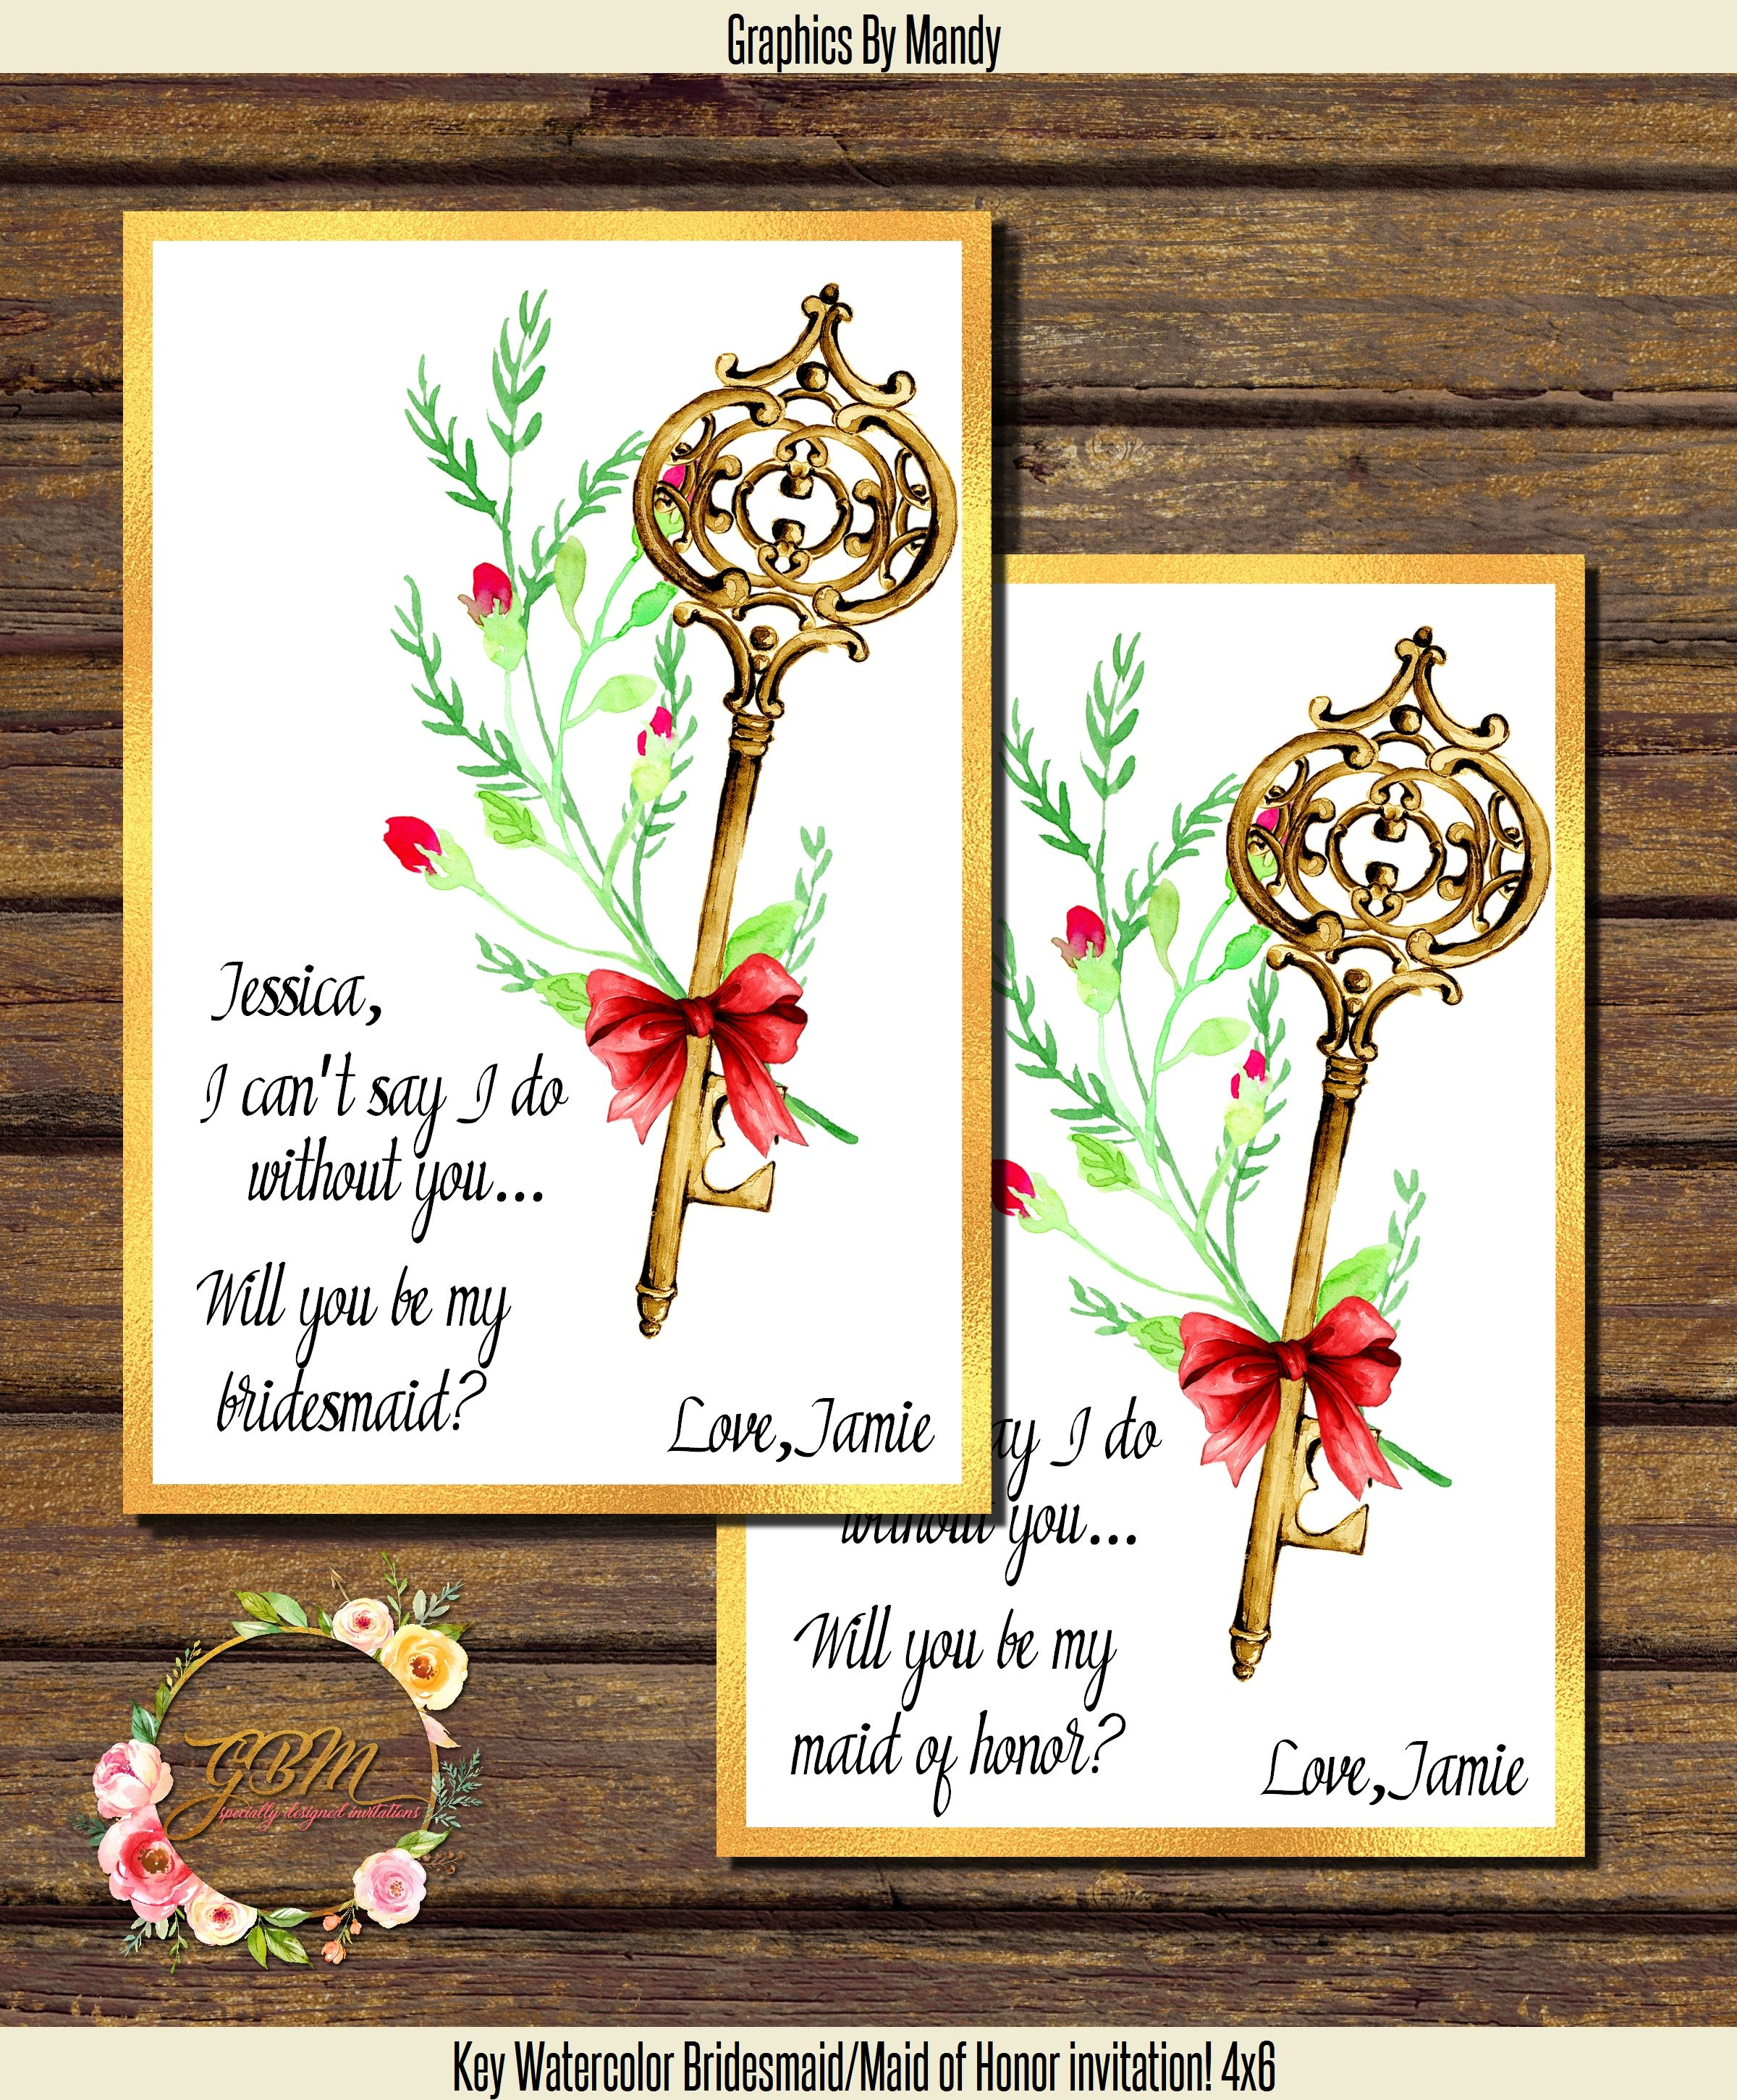 Maid Of Honor/Bridesmaid Wedding Invitation! 4x6 Digital